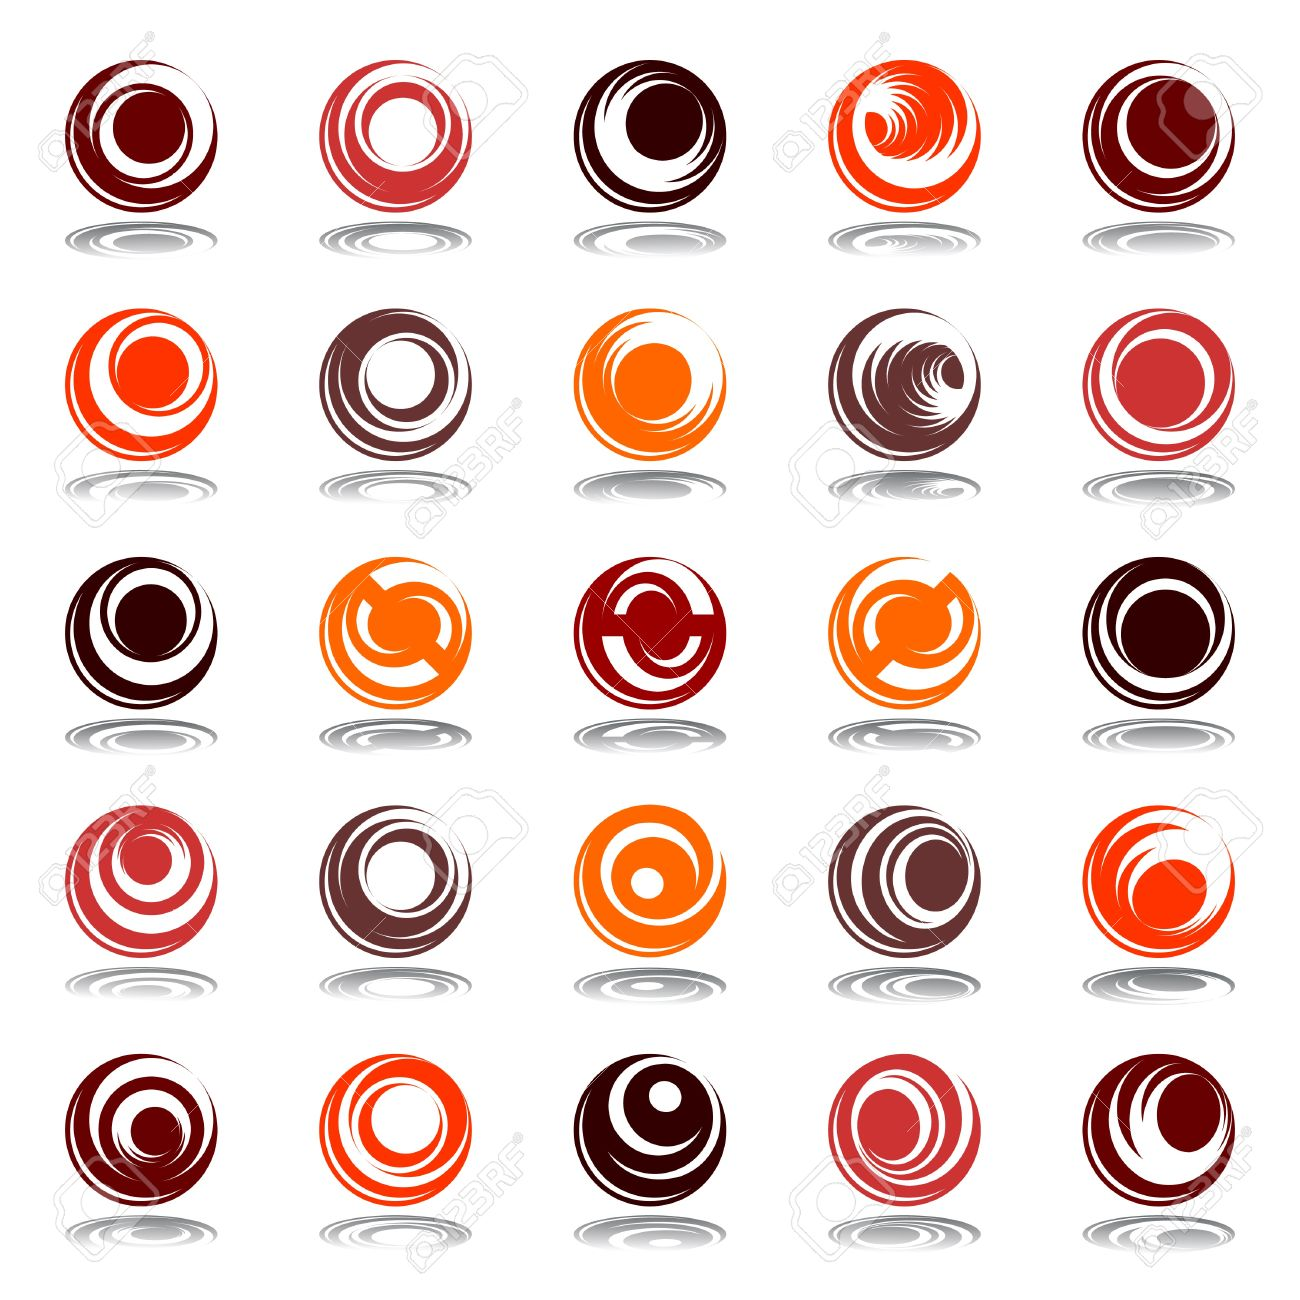 Movement and rotation in circle shape. Design elements set in warm colors. Vector art. - 12927330